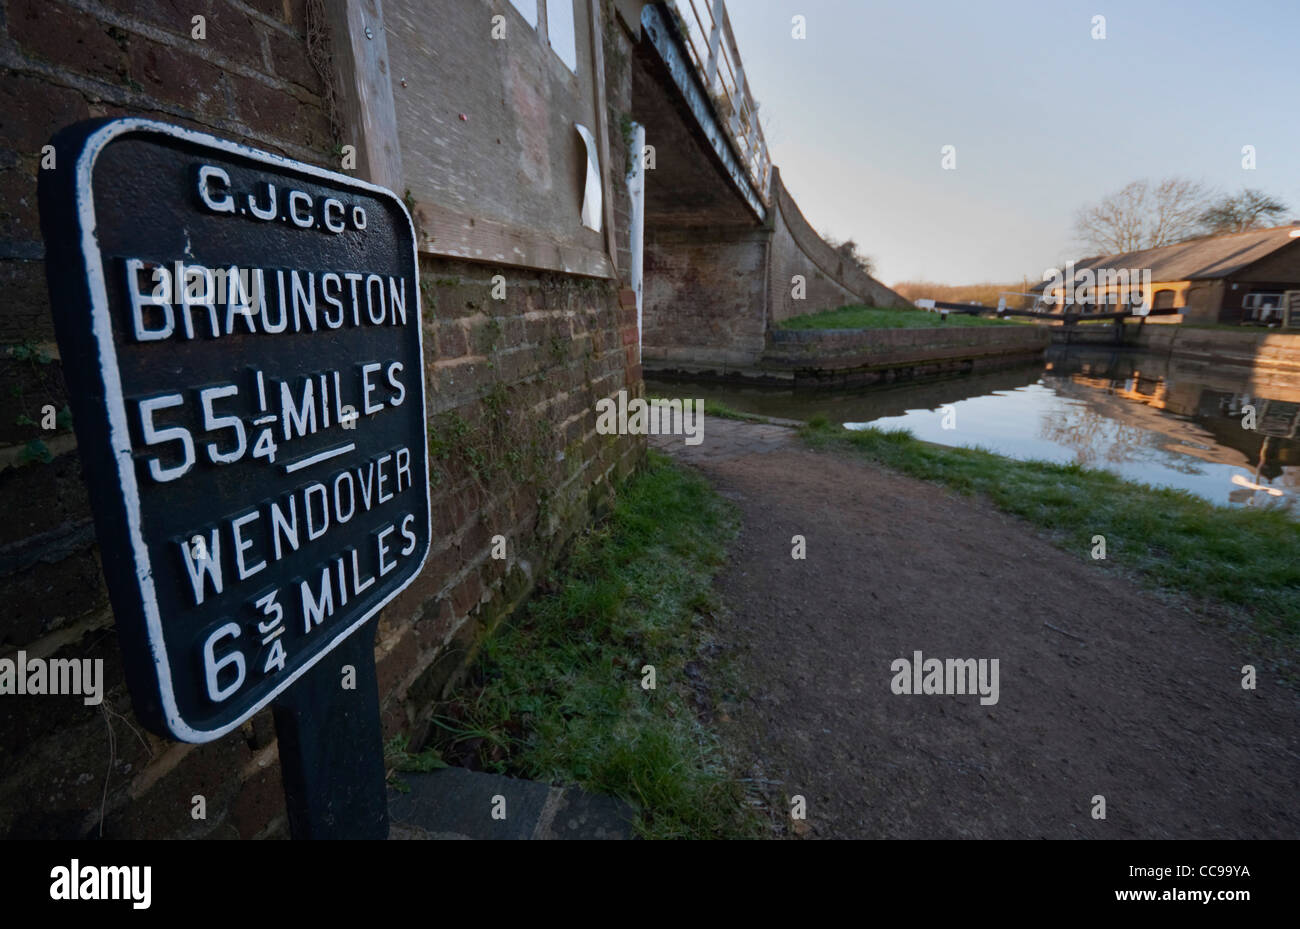 Mile marker showing distance to Braunston and Wendover at Bulbourne Junction on the Grand Union Canal, Herts UK - Stock Image